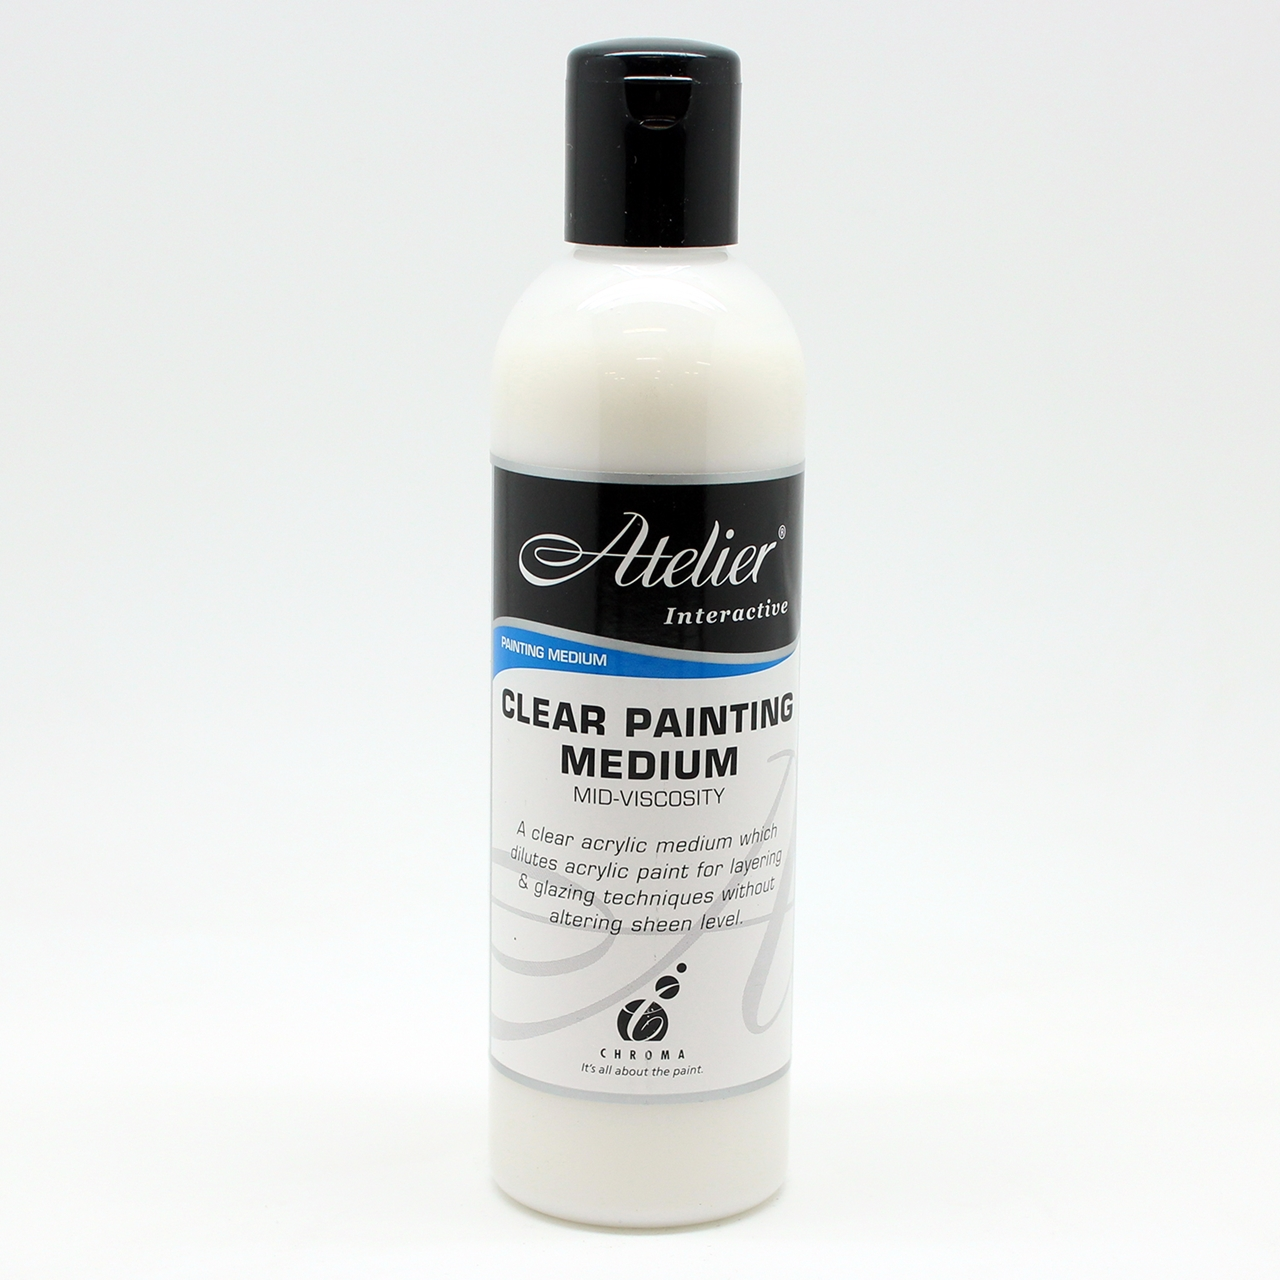 0015414_atelier-clear-painting-med-mid-visc-250ml